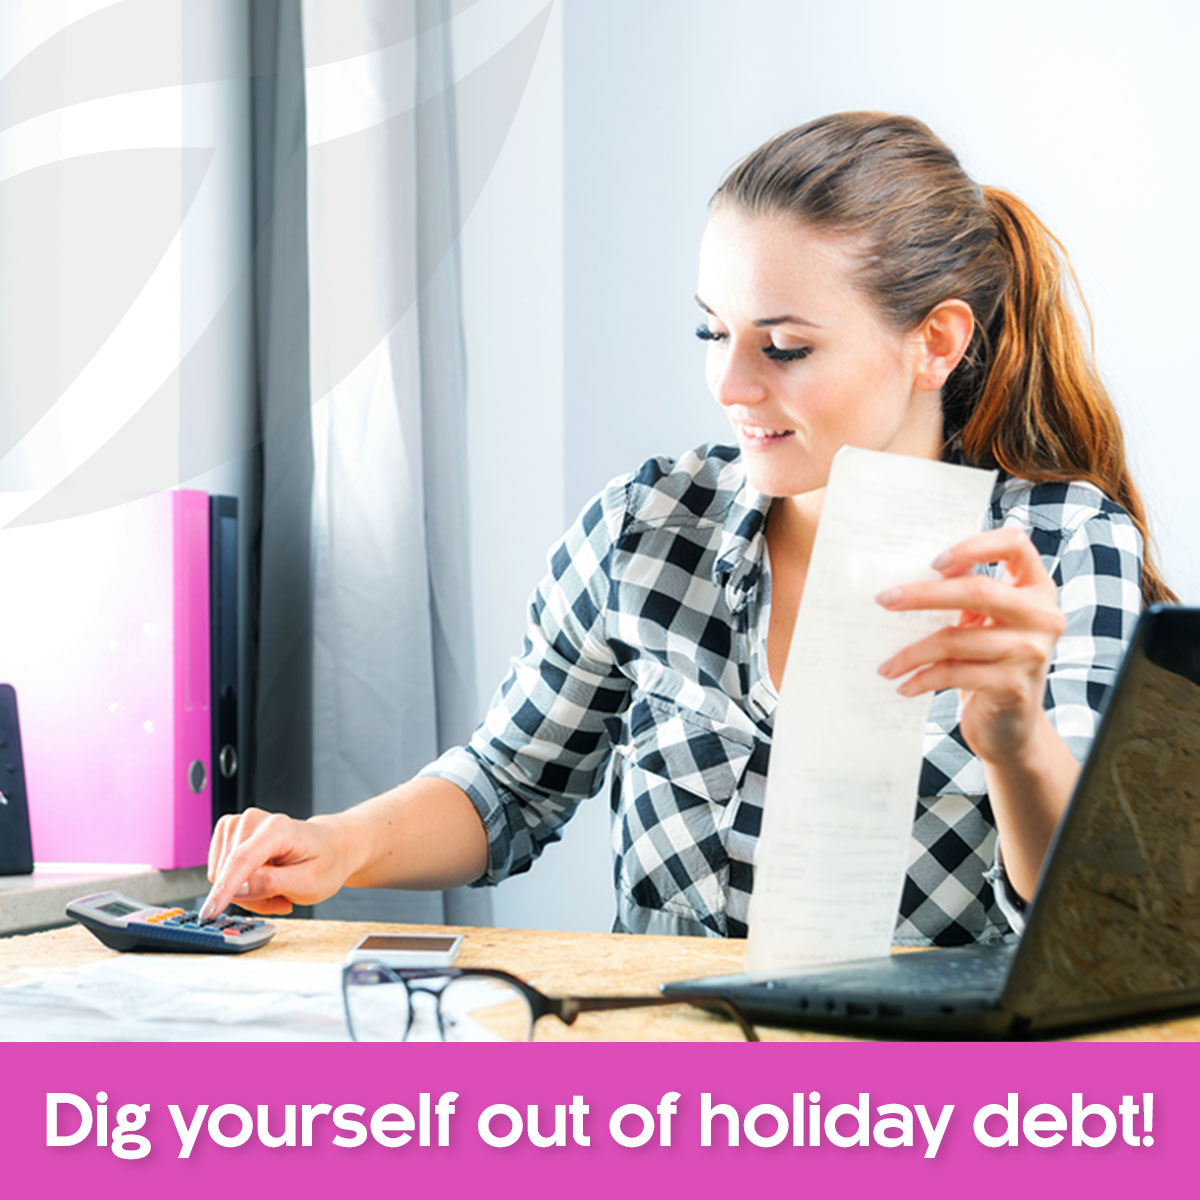 Three powerful steps to paying down holiday debt